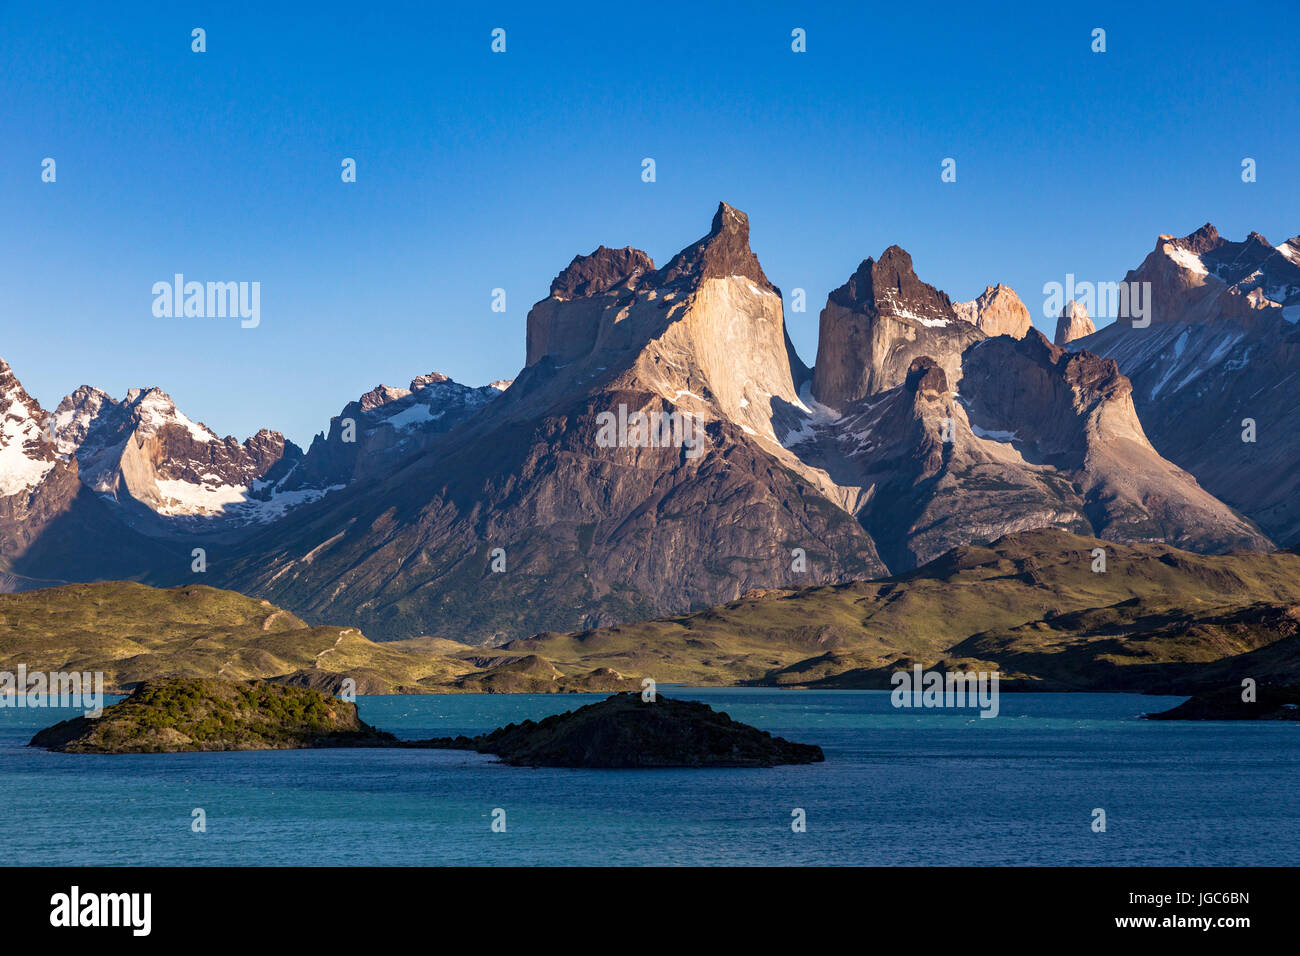 Lago Pehoe, Torres del Paine National Park, Patagonia, Chile - Stock Image